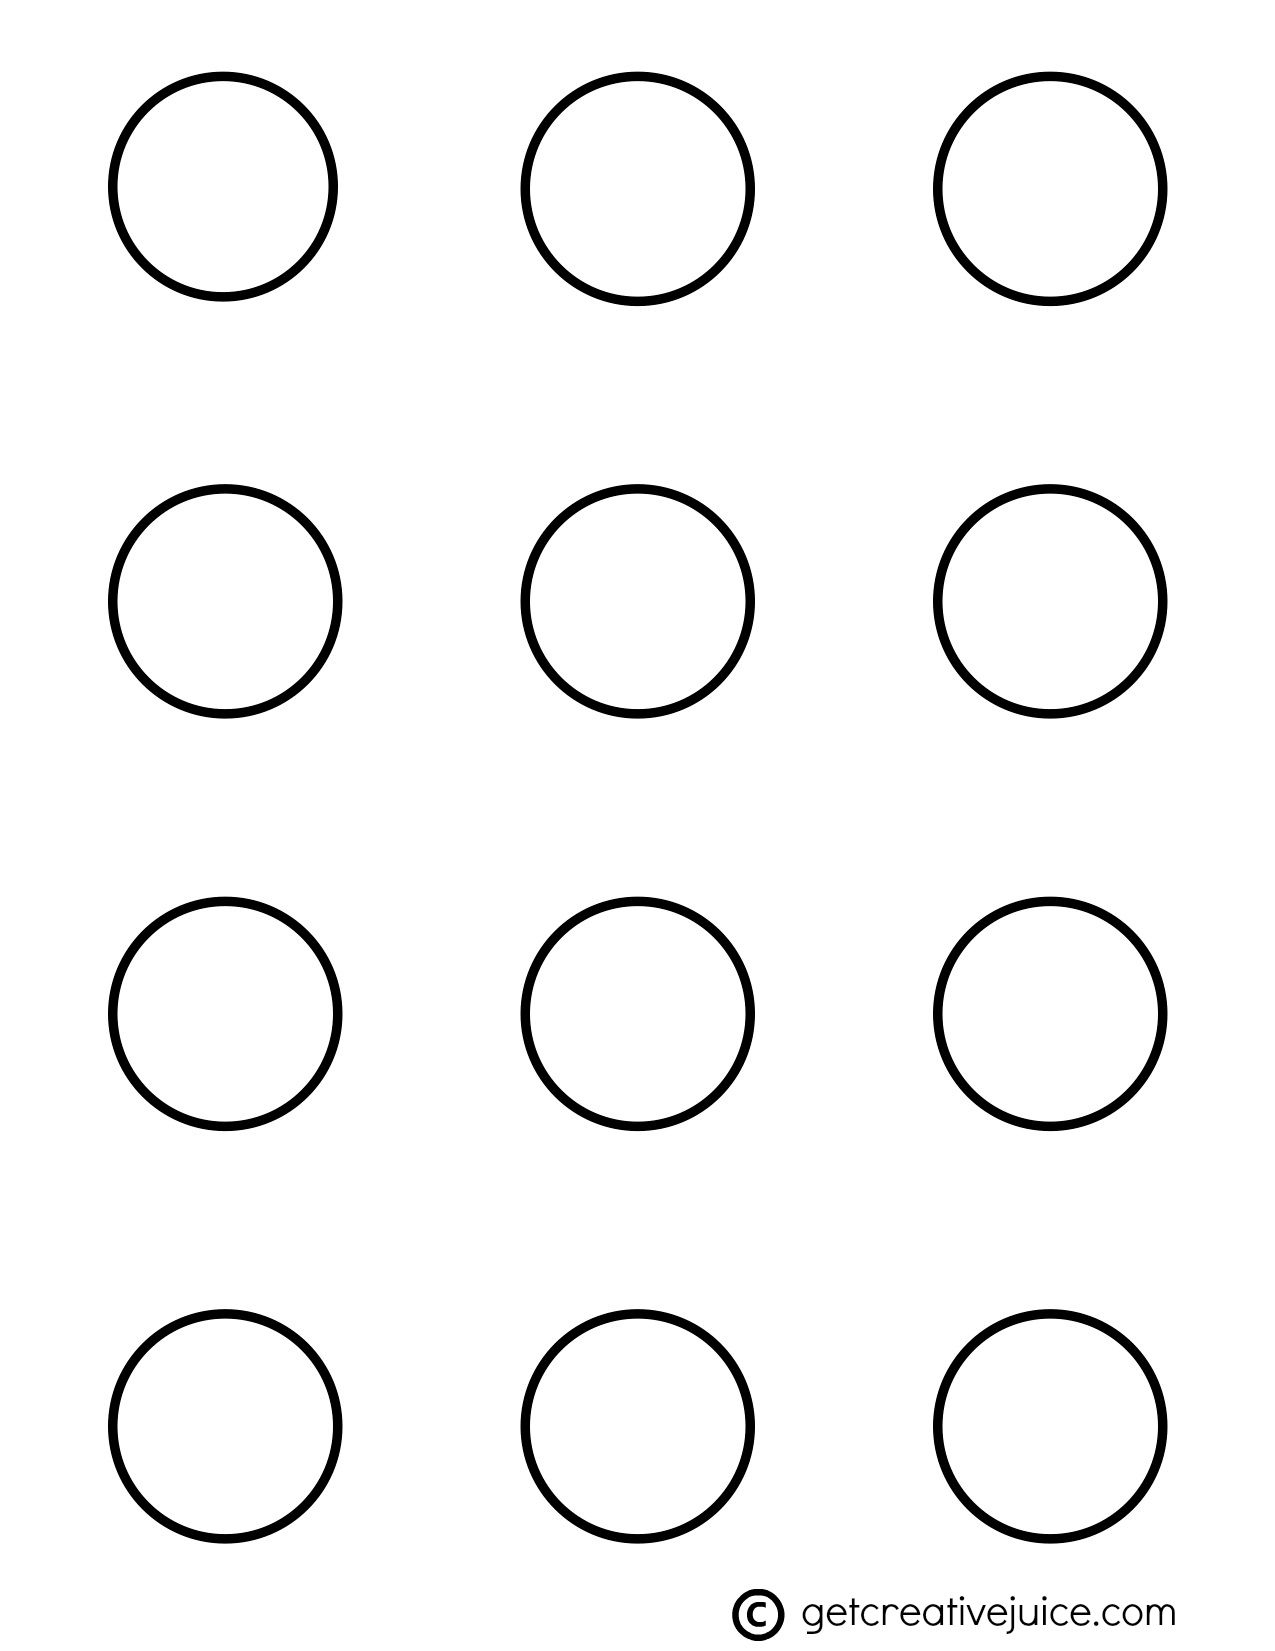 Circle 1.5 Inch Macaron Template | Dessert Before Dinner In 2019 - Free Printable 6 Inch Circle Template